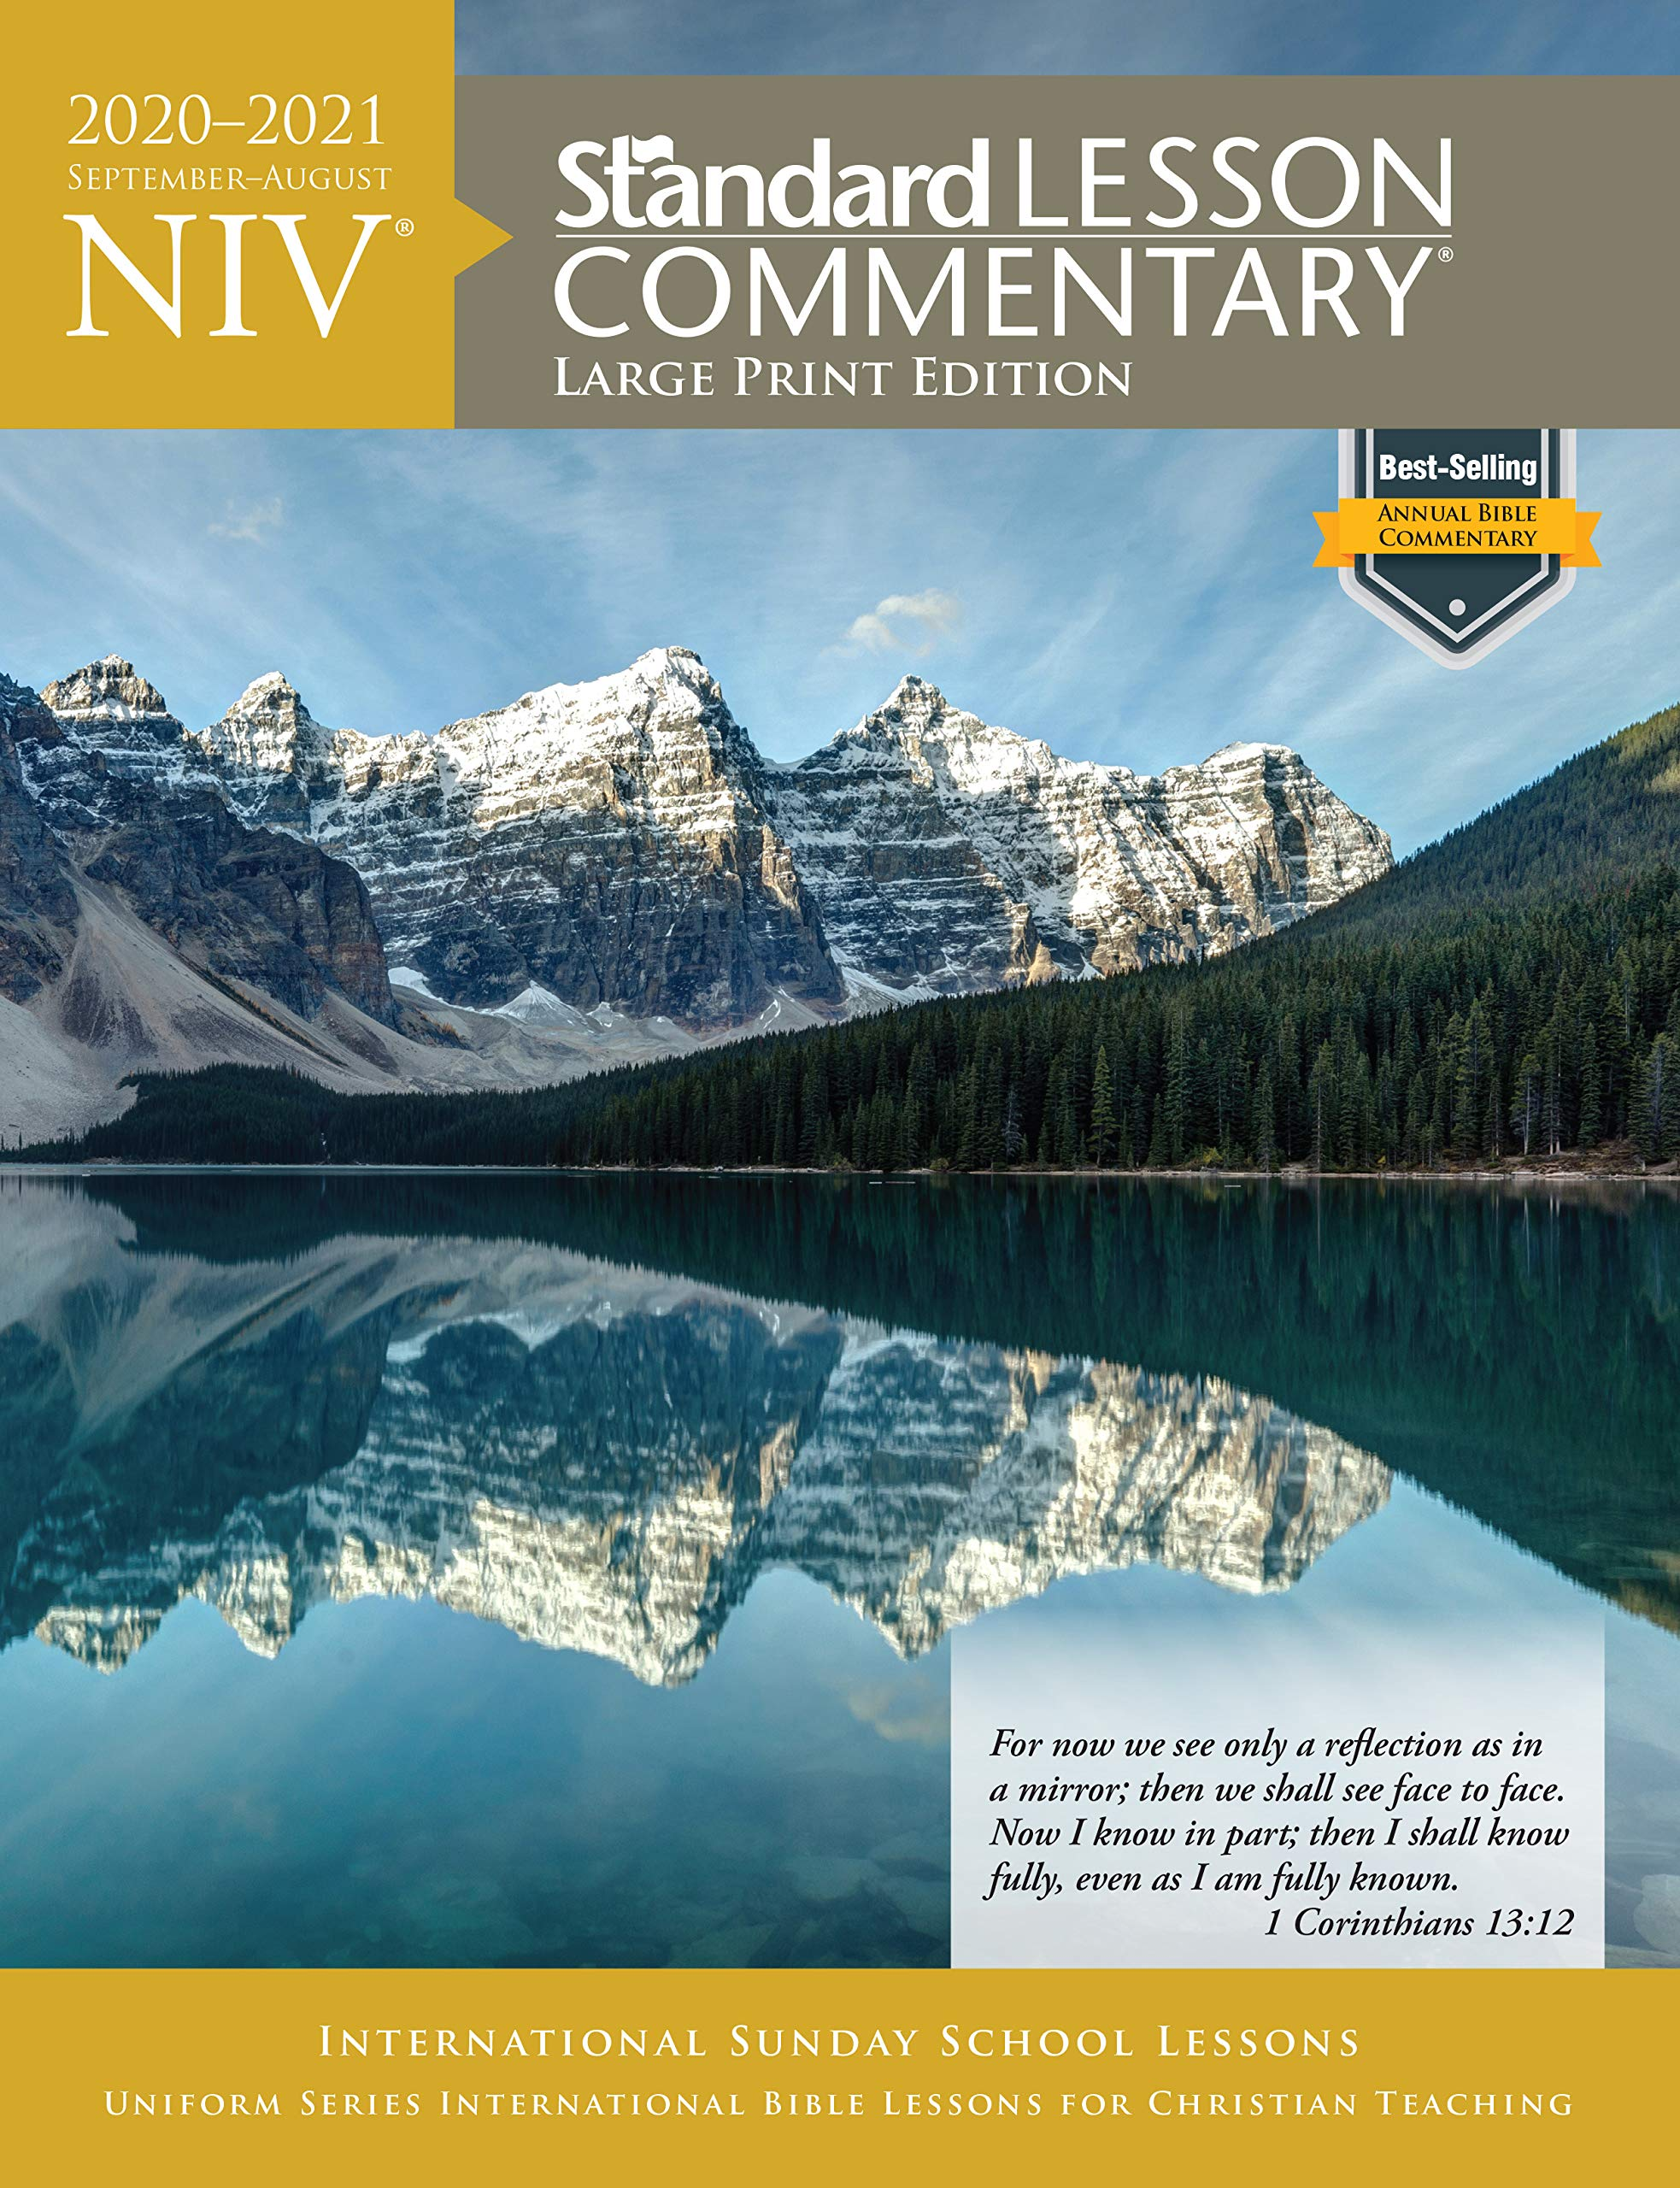 NIV® Standard Lesson Commentary® Large Print Edition 2020-2021